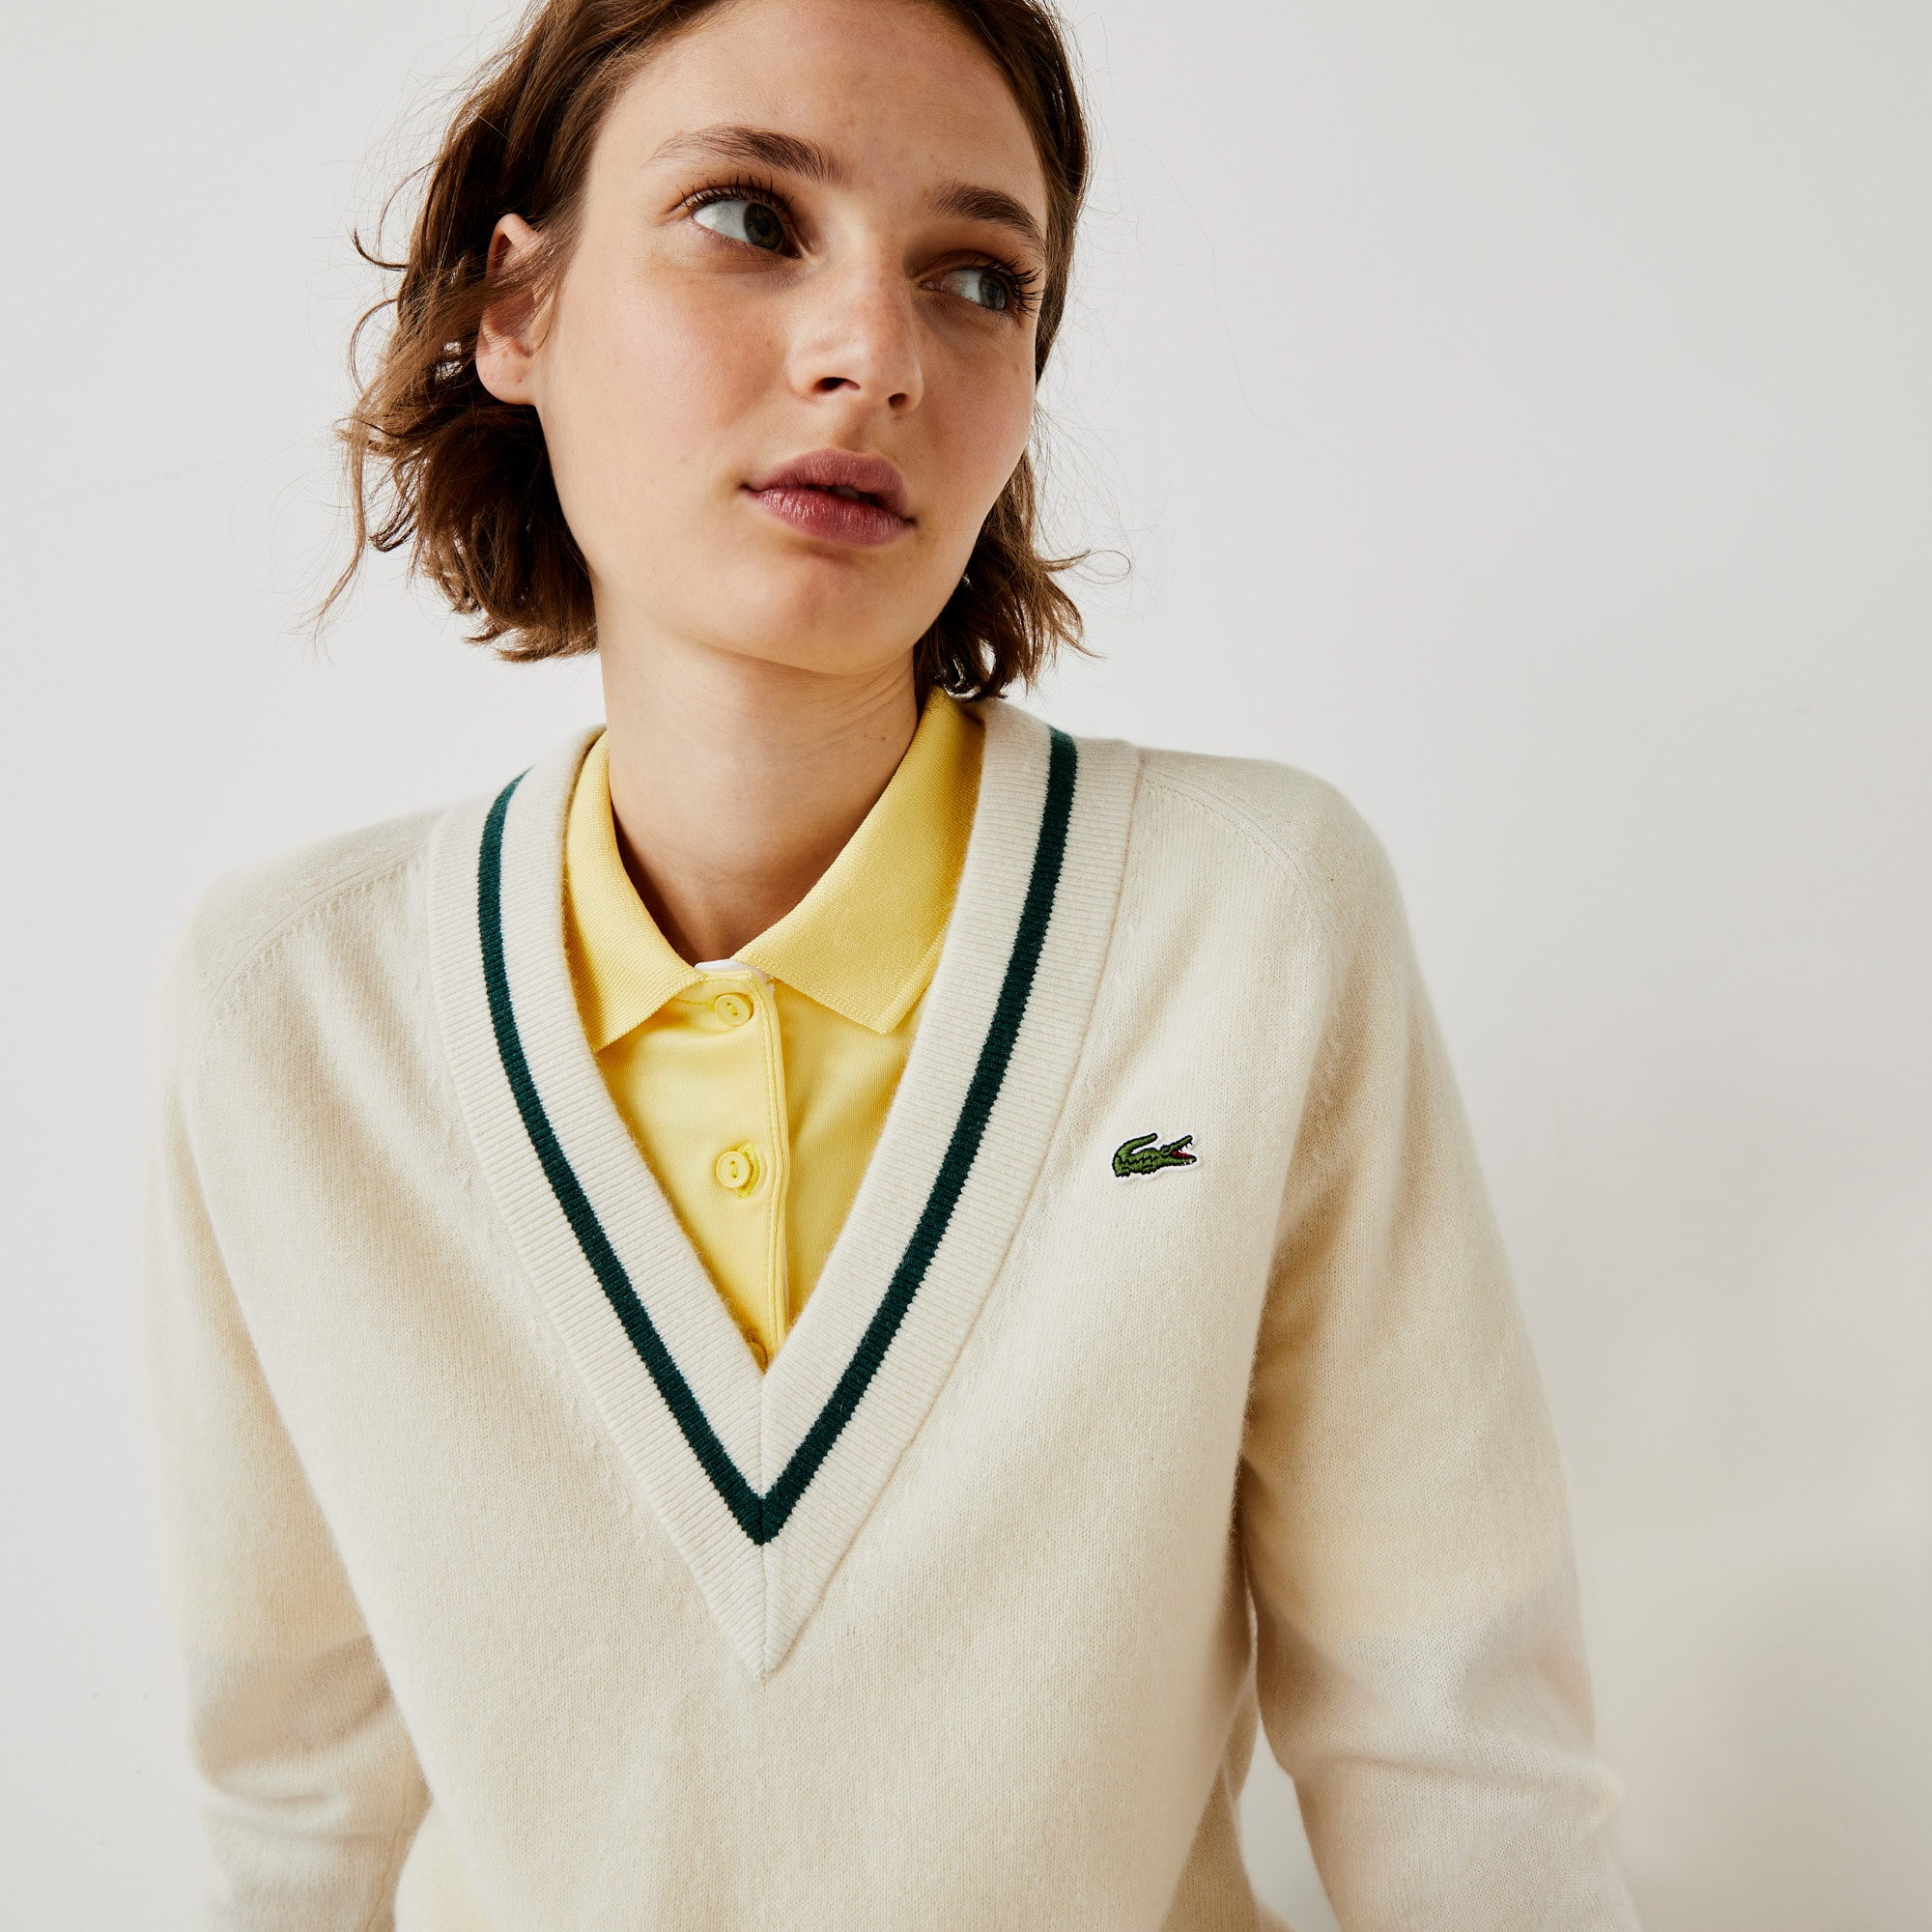 라코스테 스포츠 캐시미어 골프 스웨터 Womens Lacoste SPORT Recycled Cashmere V-neck Golf Sweater